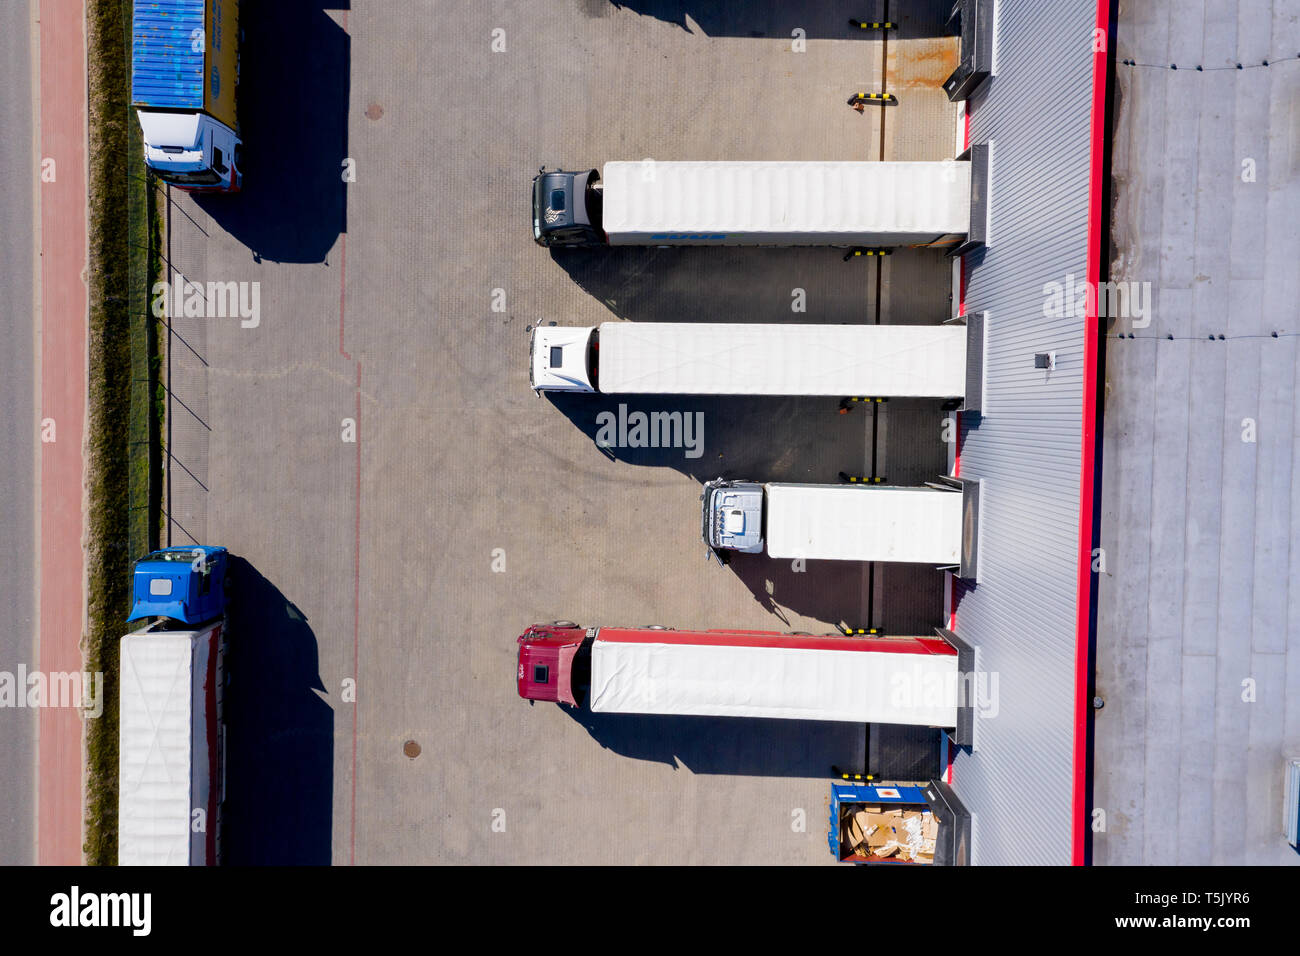 Aerial Side Shot Of Industrial Warehouse Loading Dock Where Many